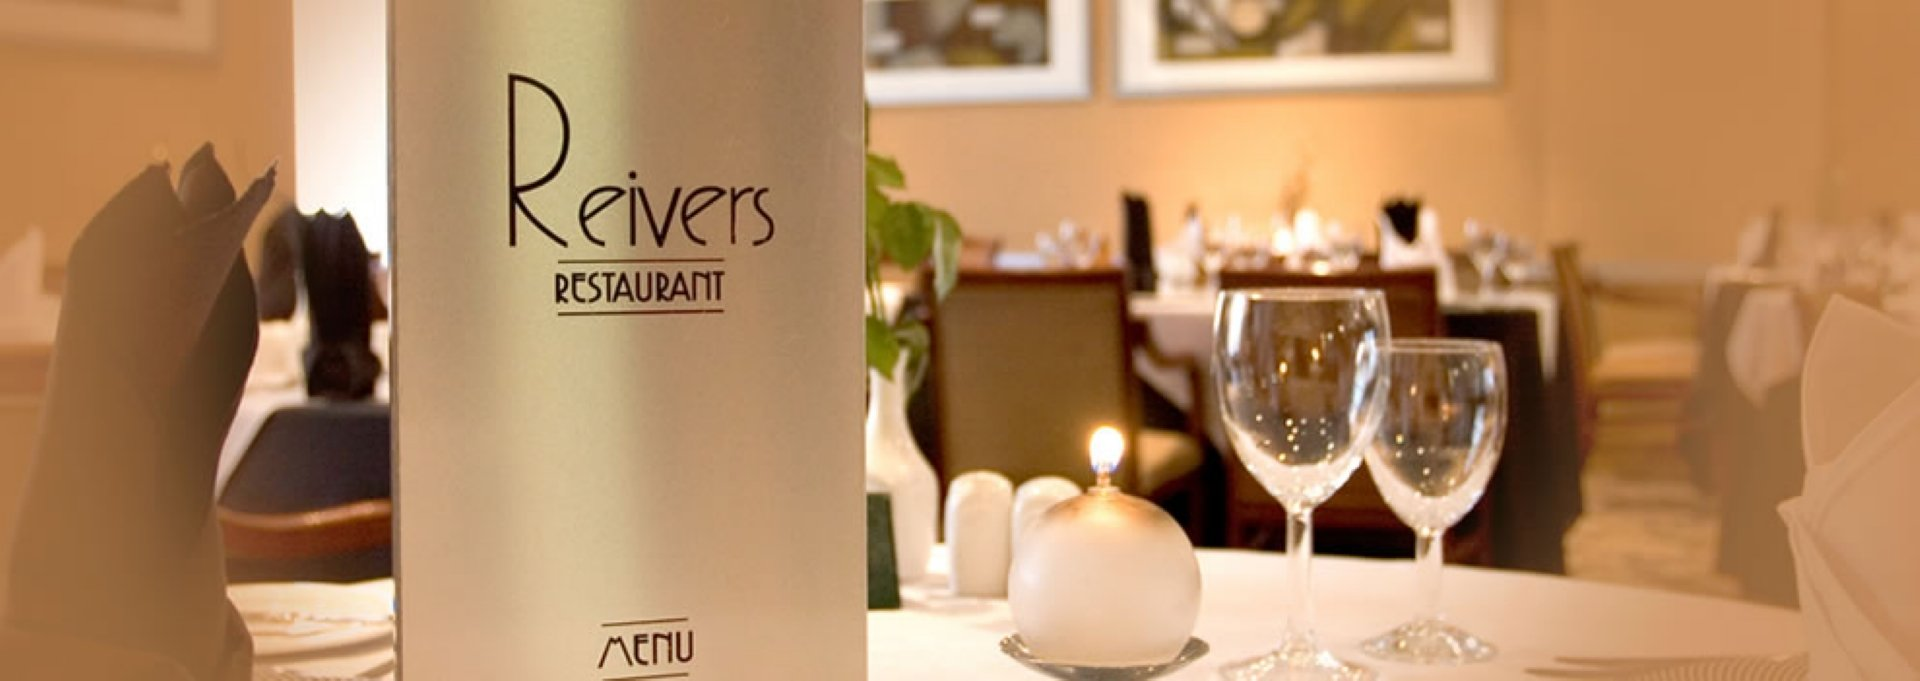 Reivers Restaurant in Dumfries at The Cairndale Hotel